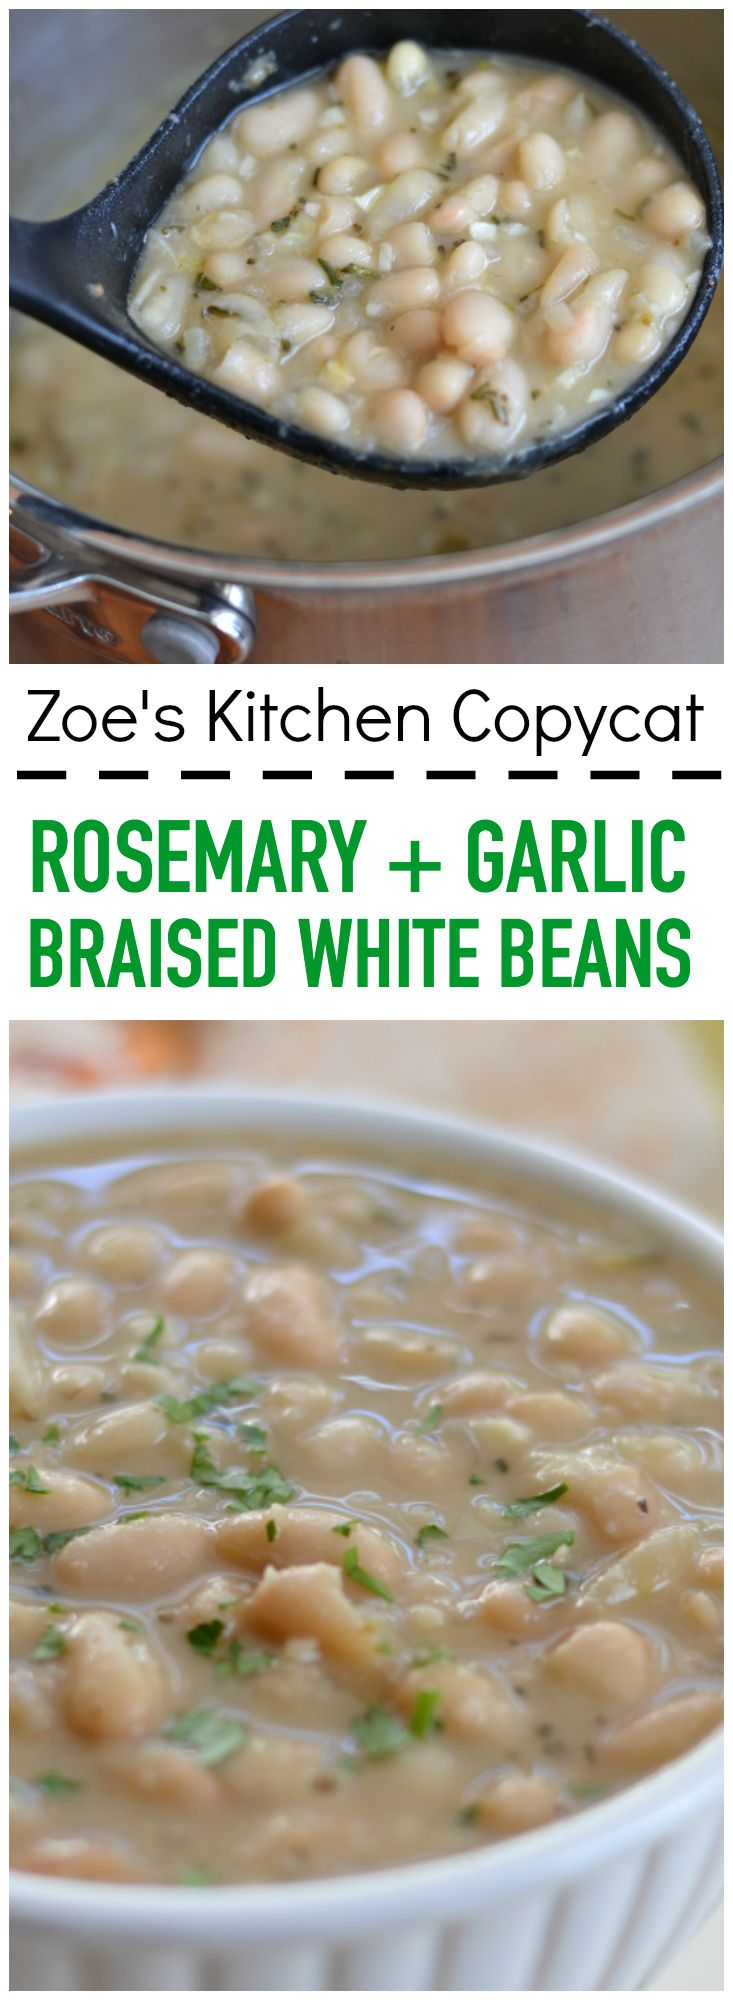 Whether you already love the rosemary white beans from Zoe's Kitchen or you've never tried them before, you'll enjoy this easy, healthy, and hearty side dish that's packed with flavor. via @goodinthesimple